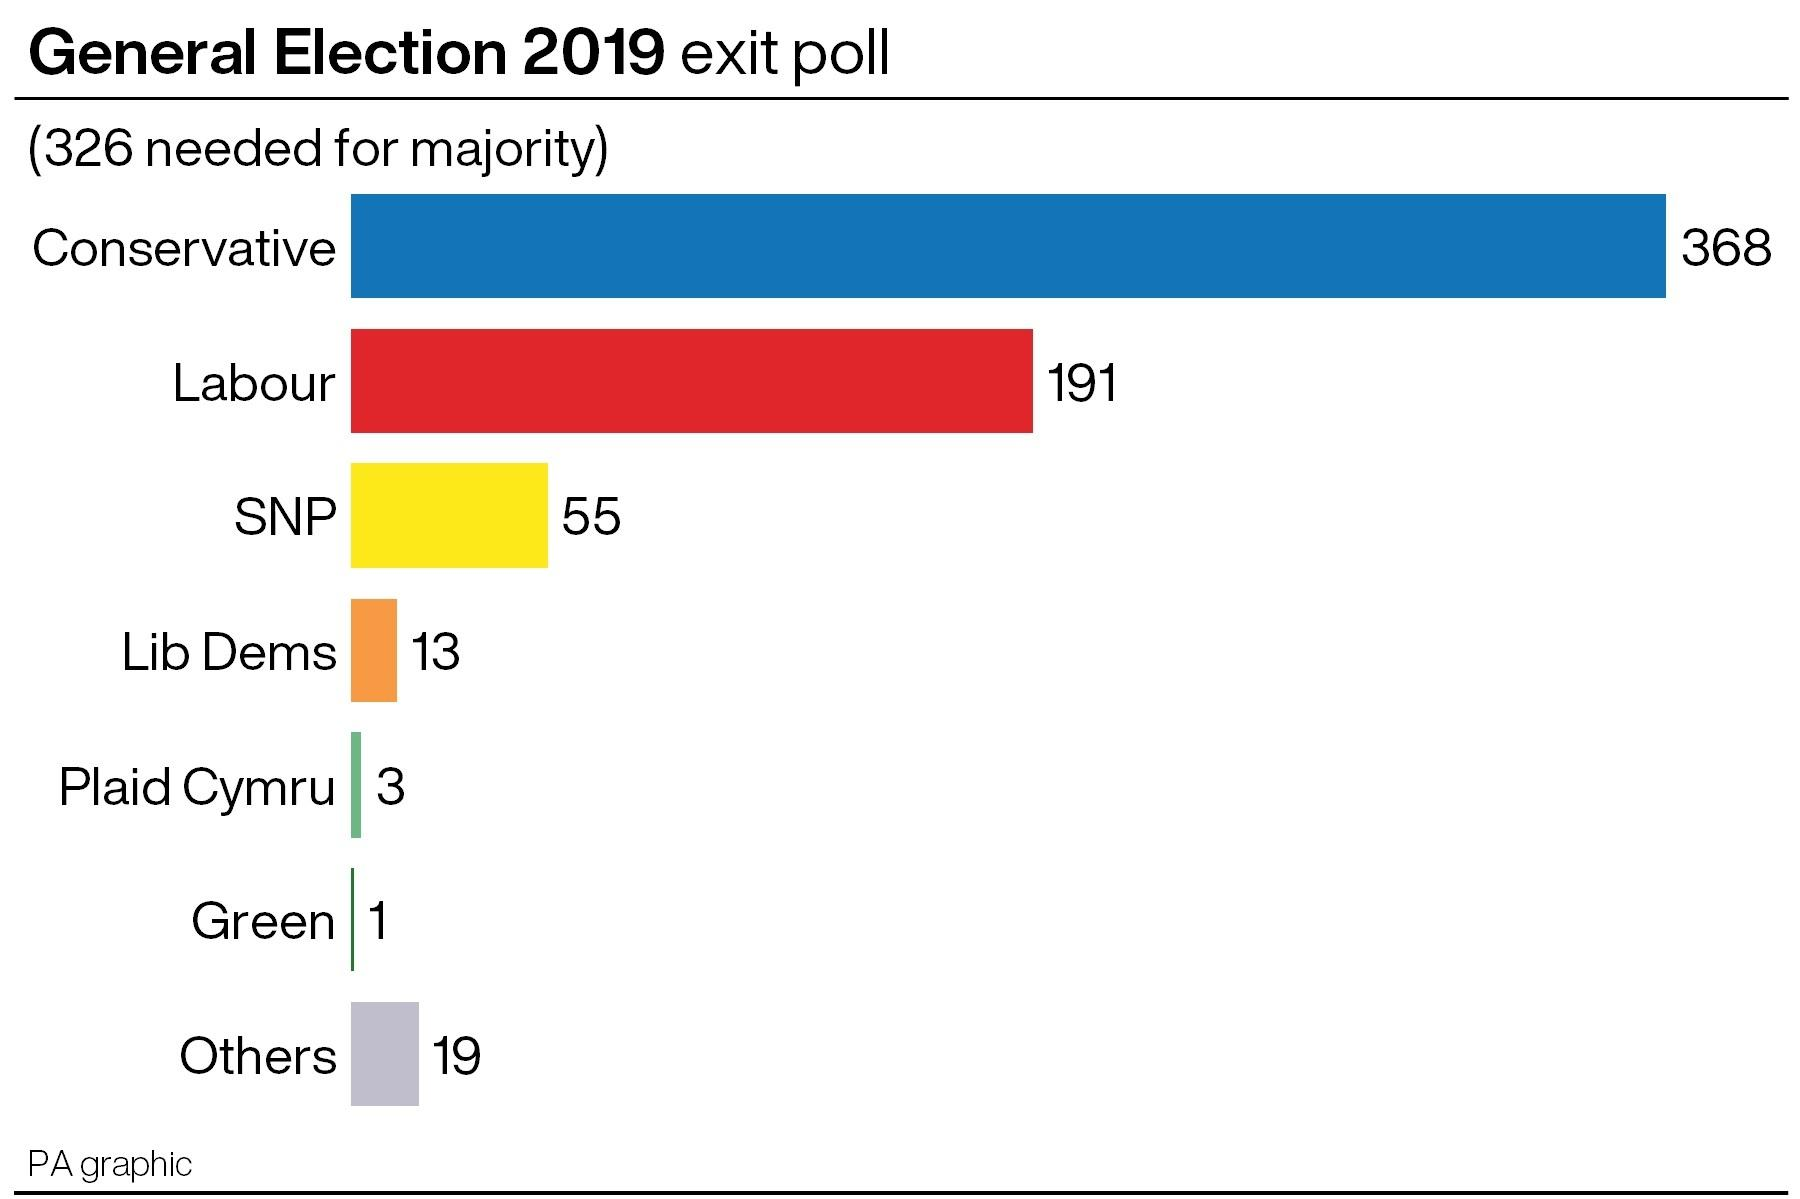 General Election exit poll